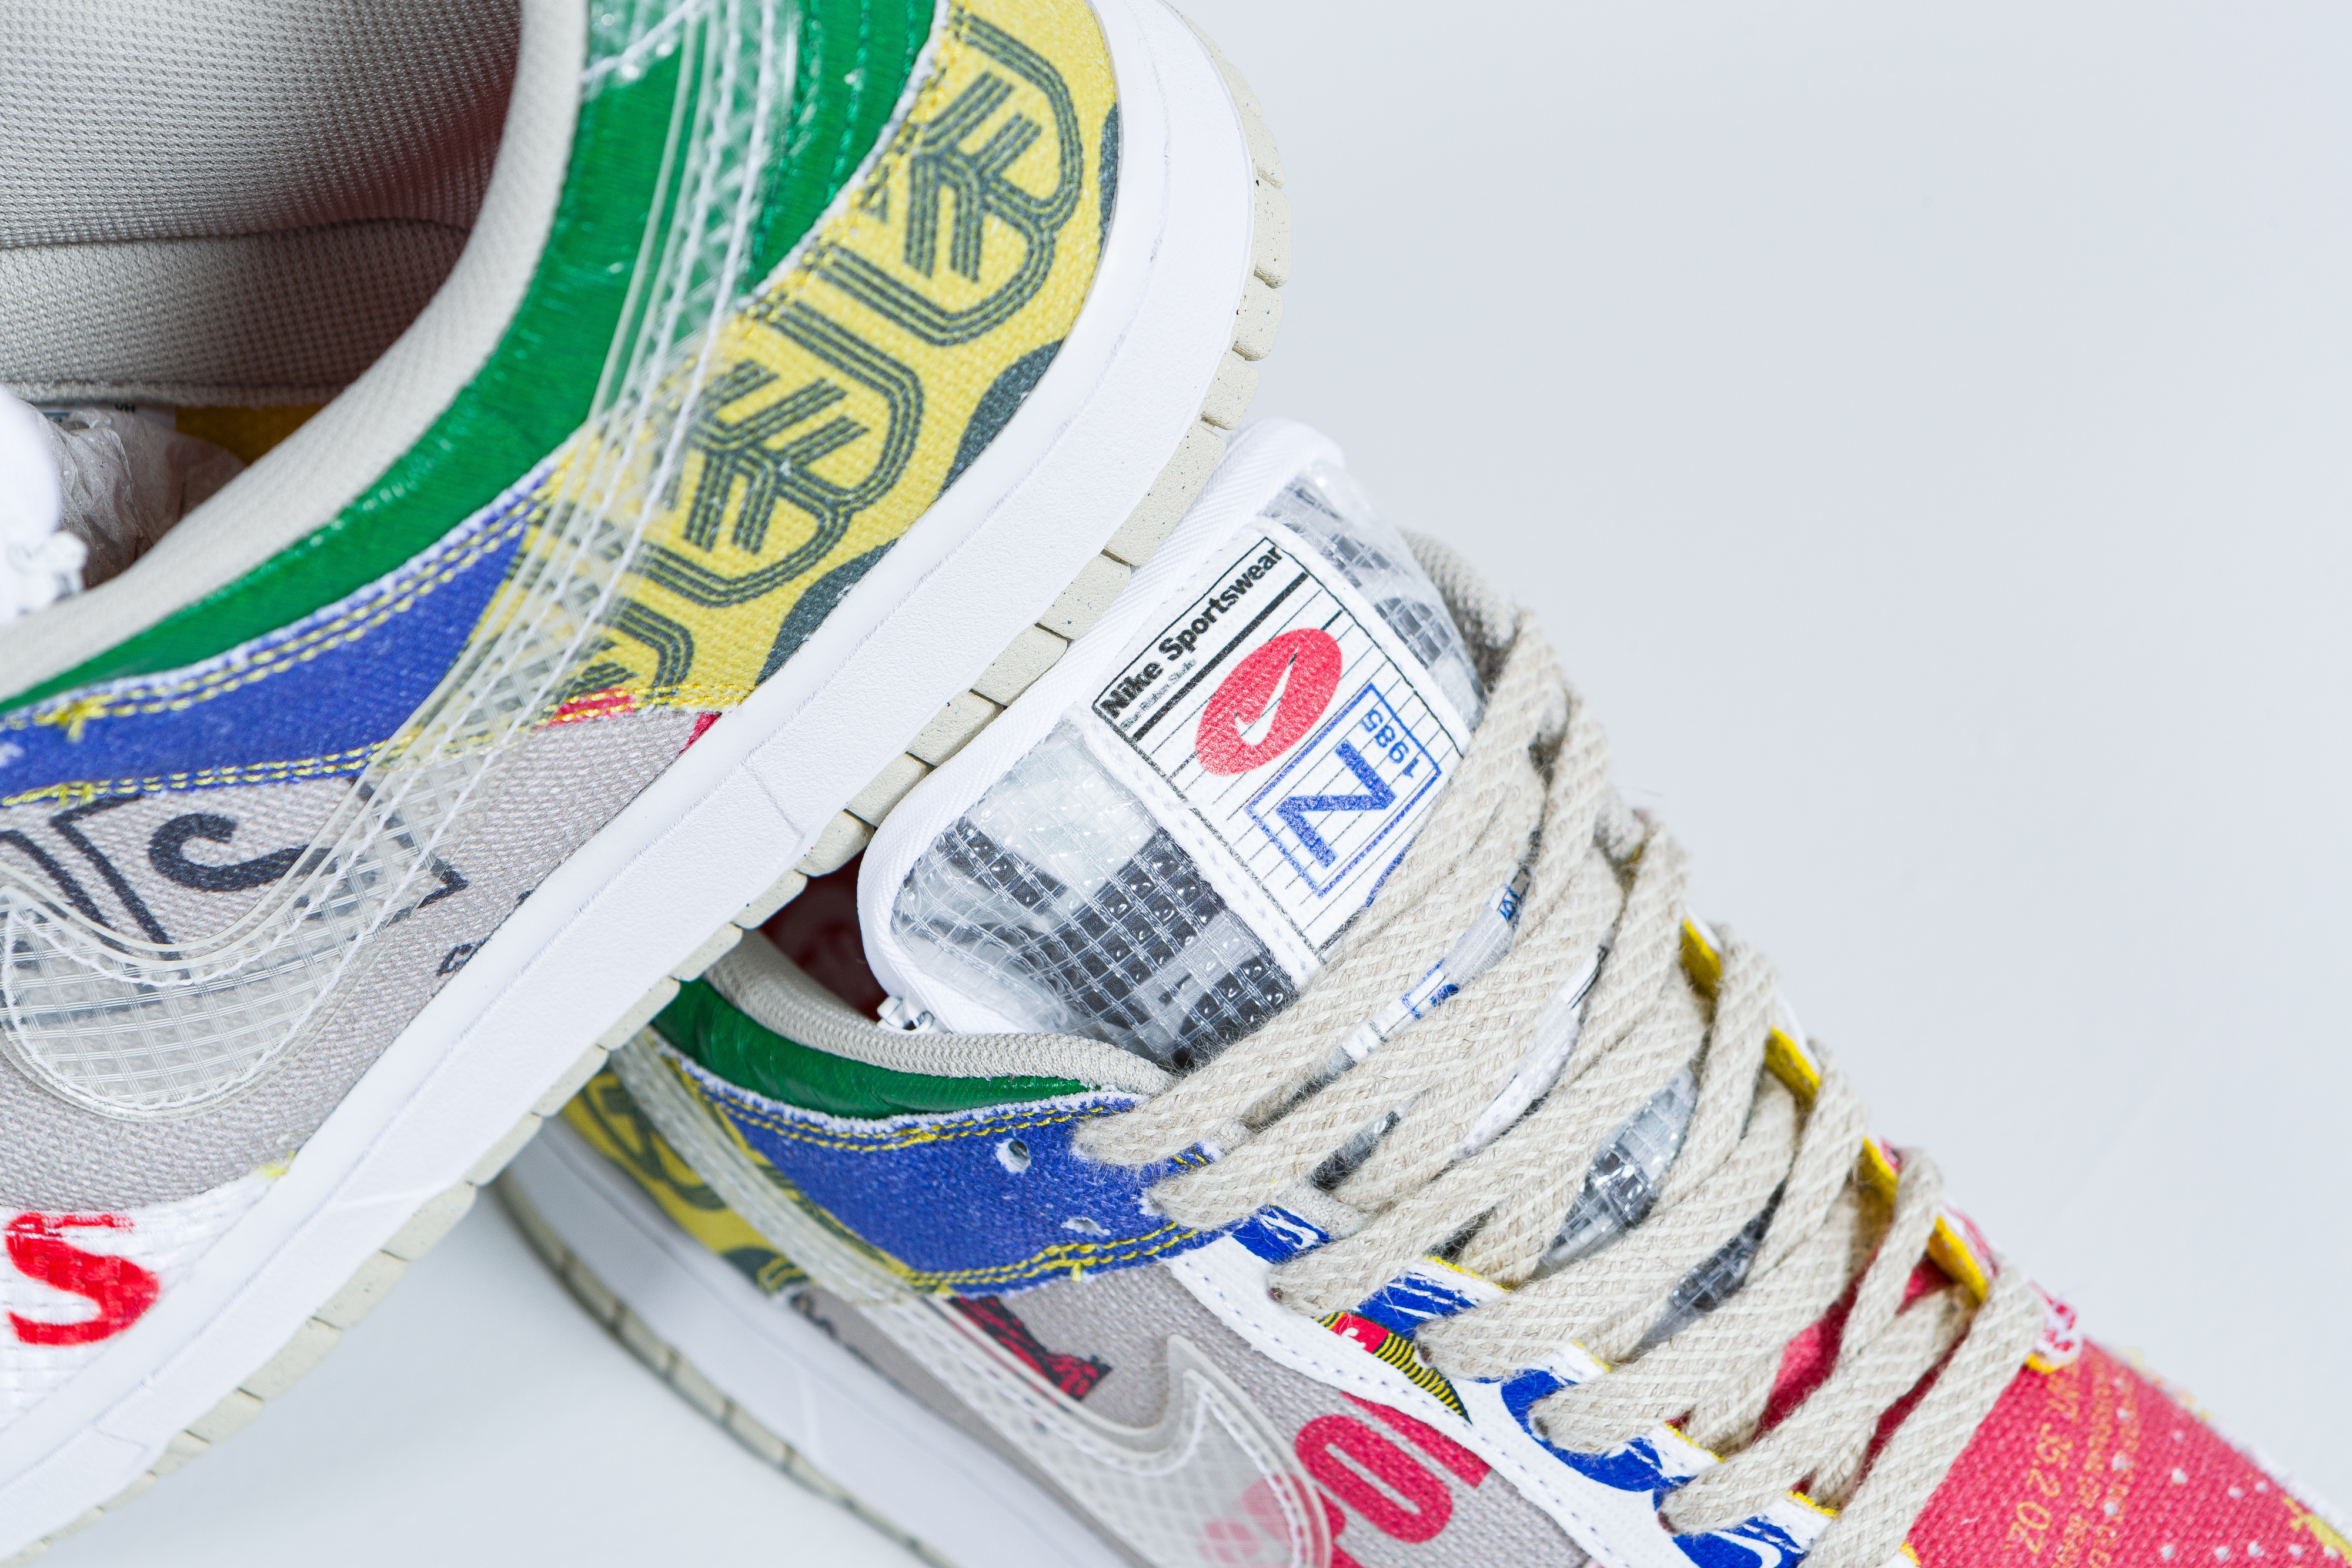 Up There Launches - Nike Dunk Low 'City Market'